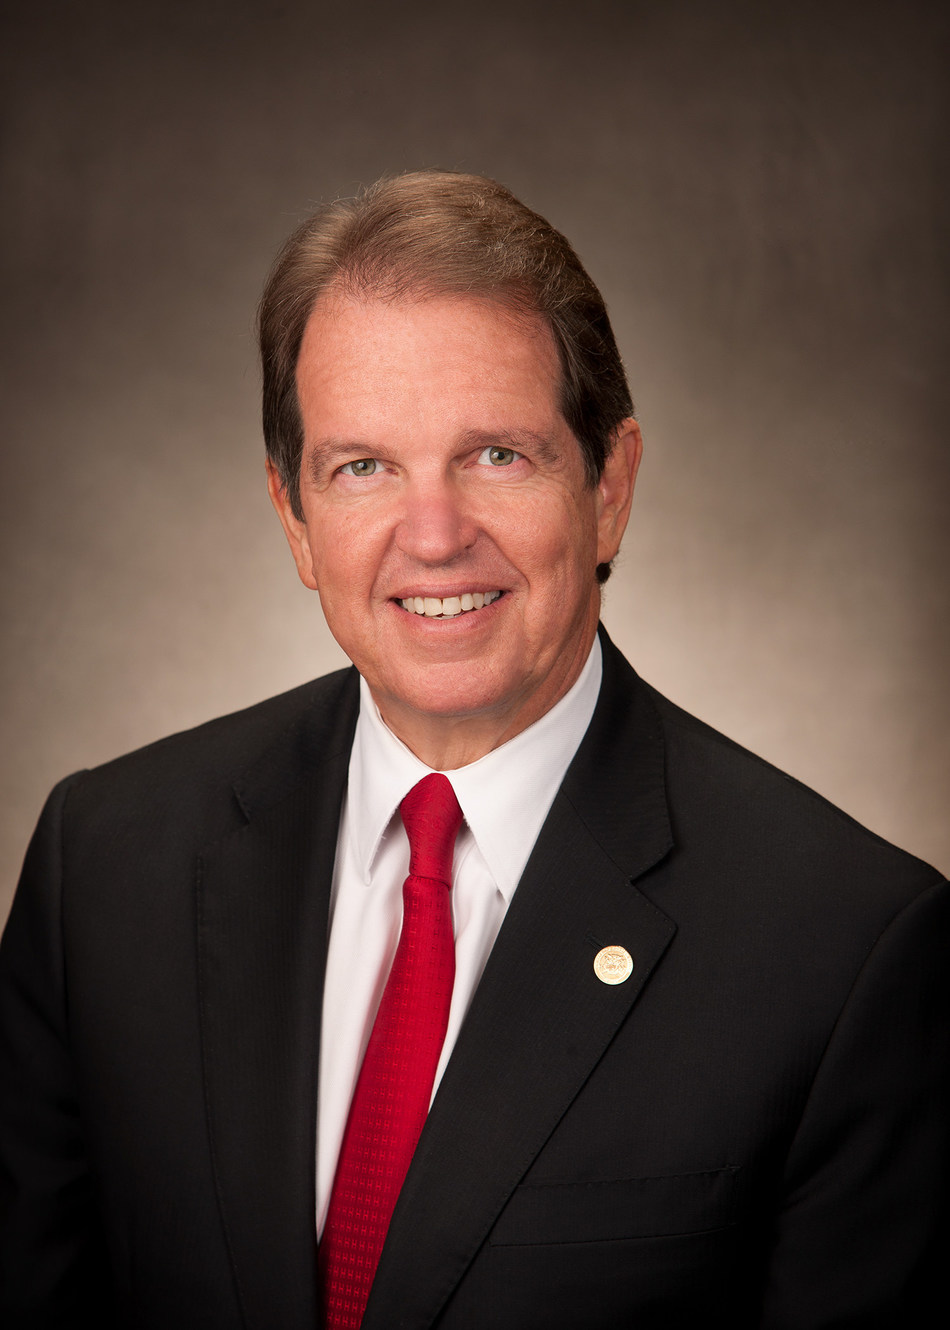 Welcome Wilson, Jr. - President & CEO